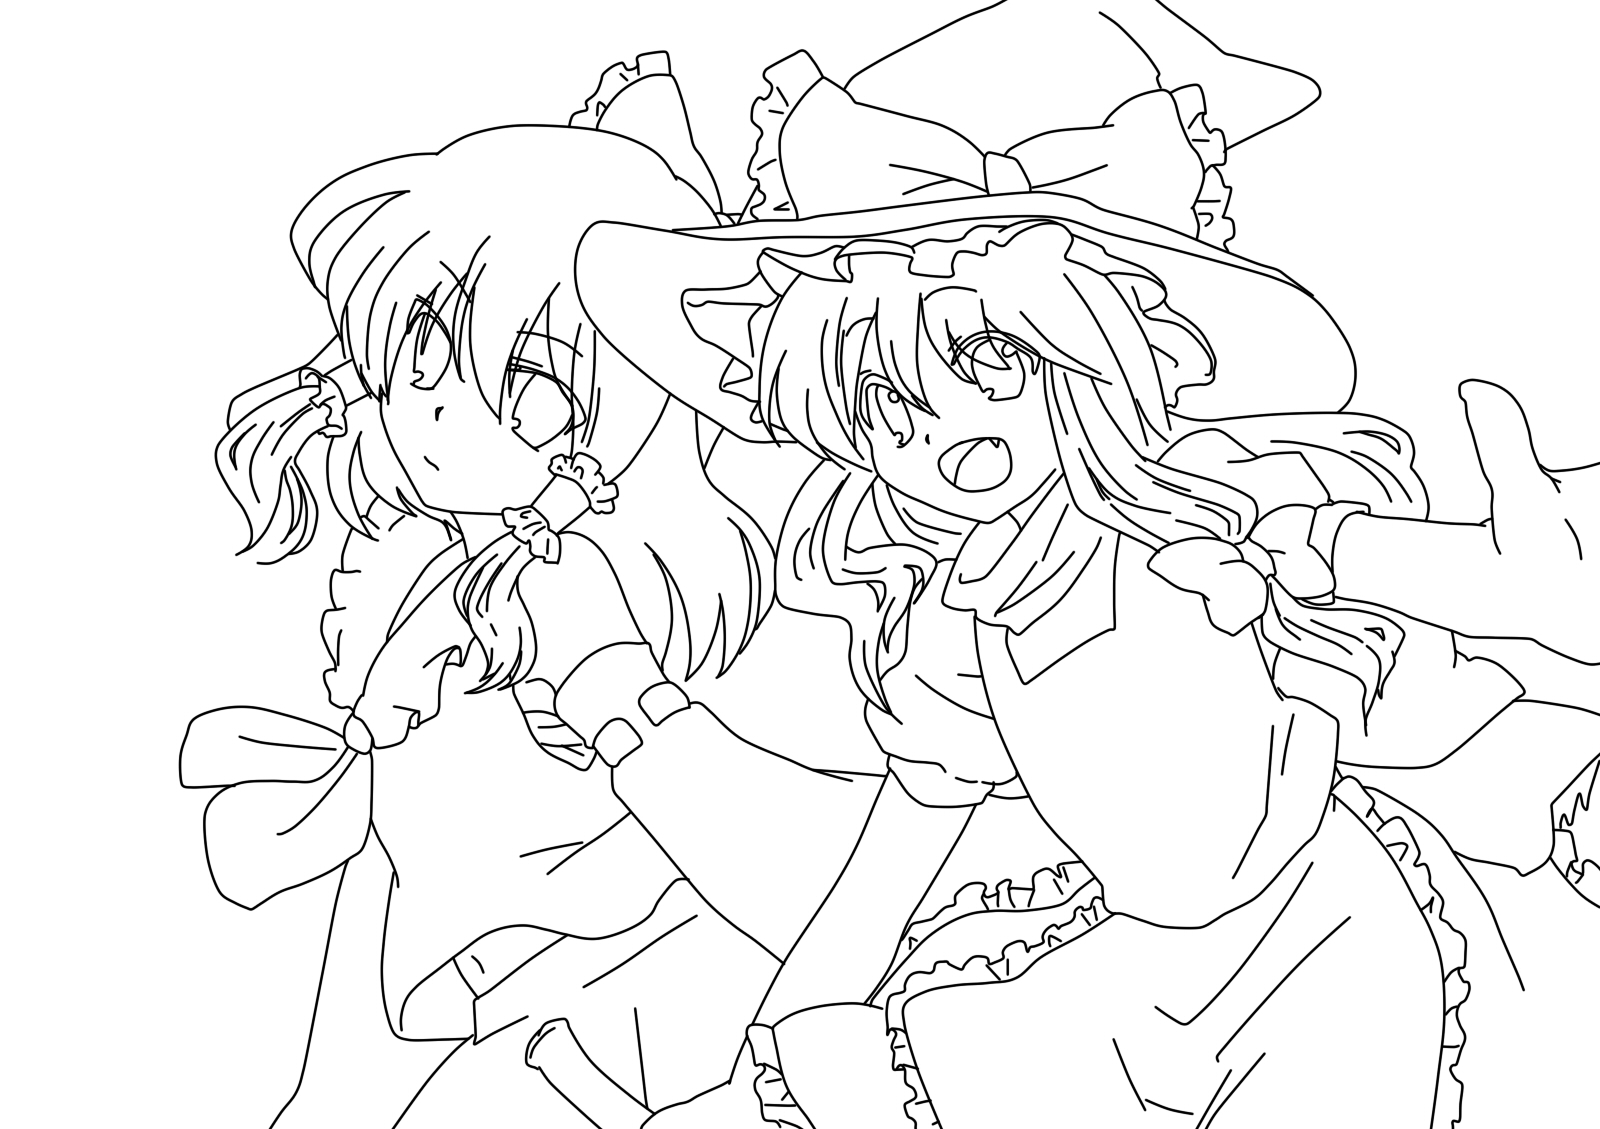 reimu hakurei and marisa kirisame coloring page by